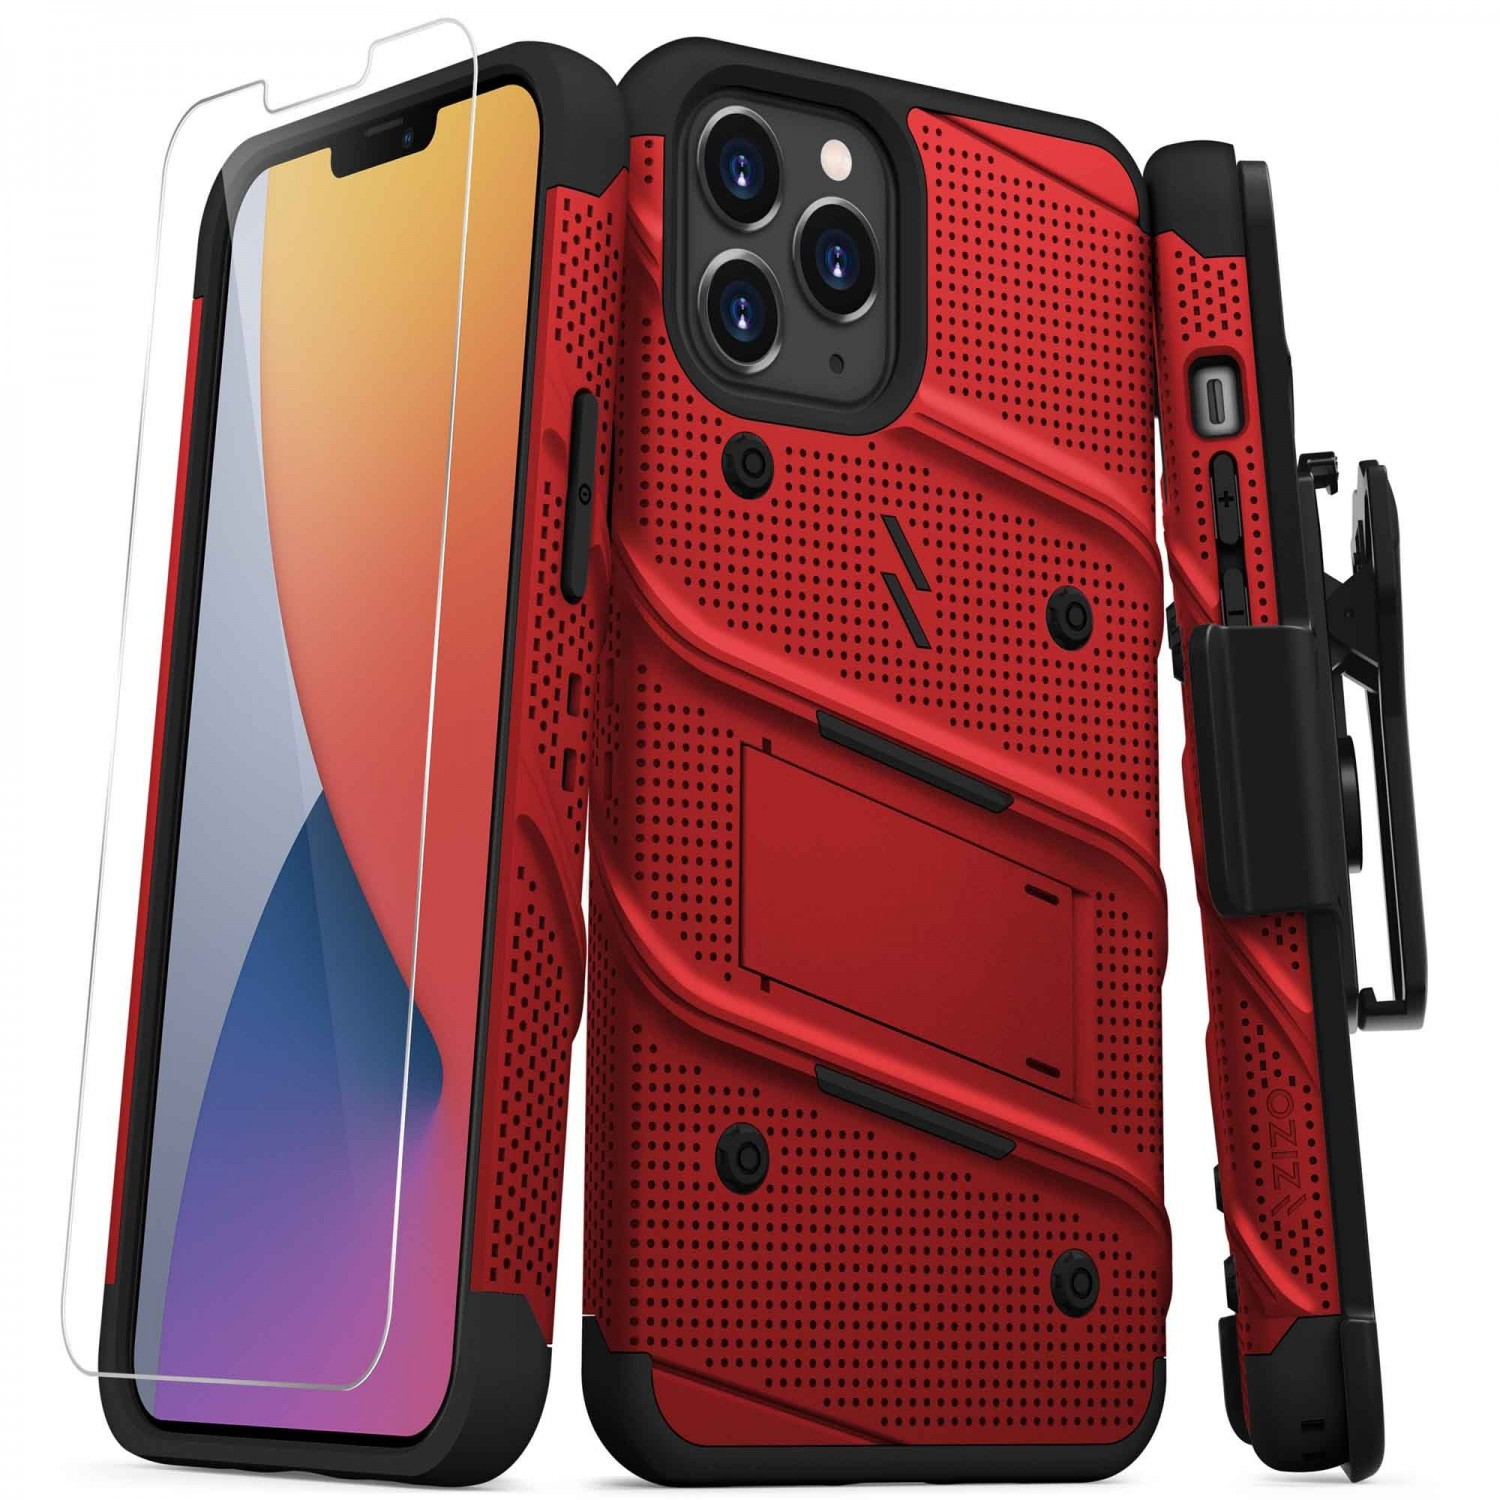 Case - Zizo Bolt Case for iPhone 12 PRO MAX Red/Black